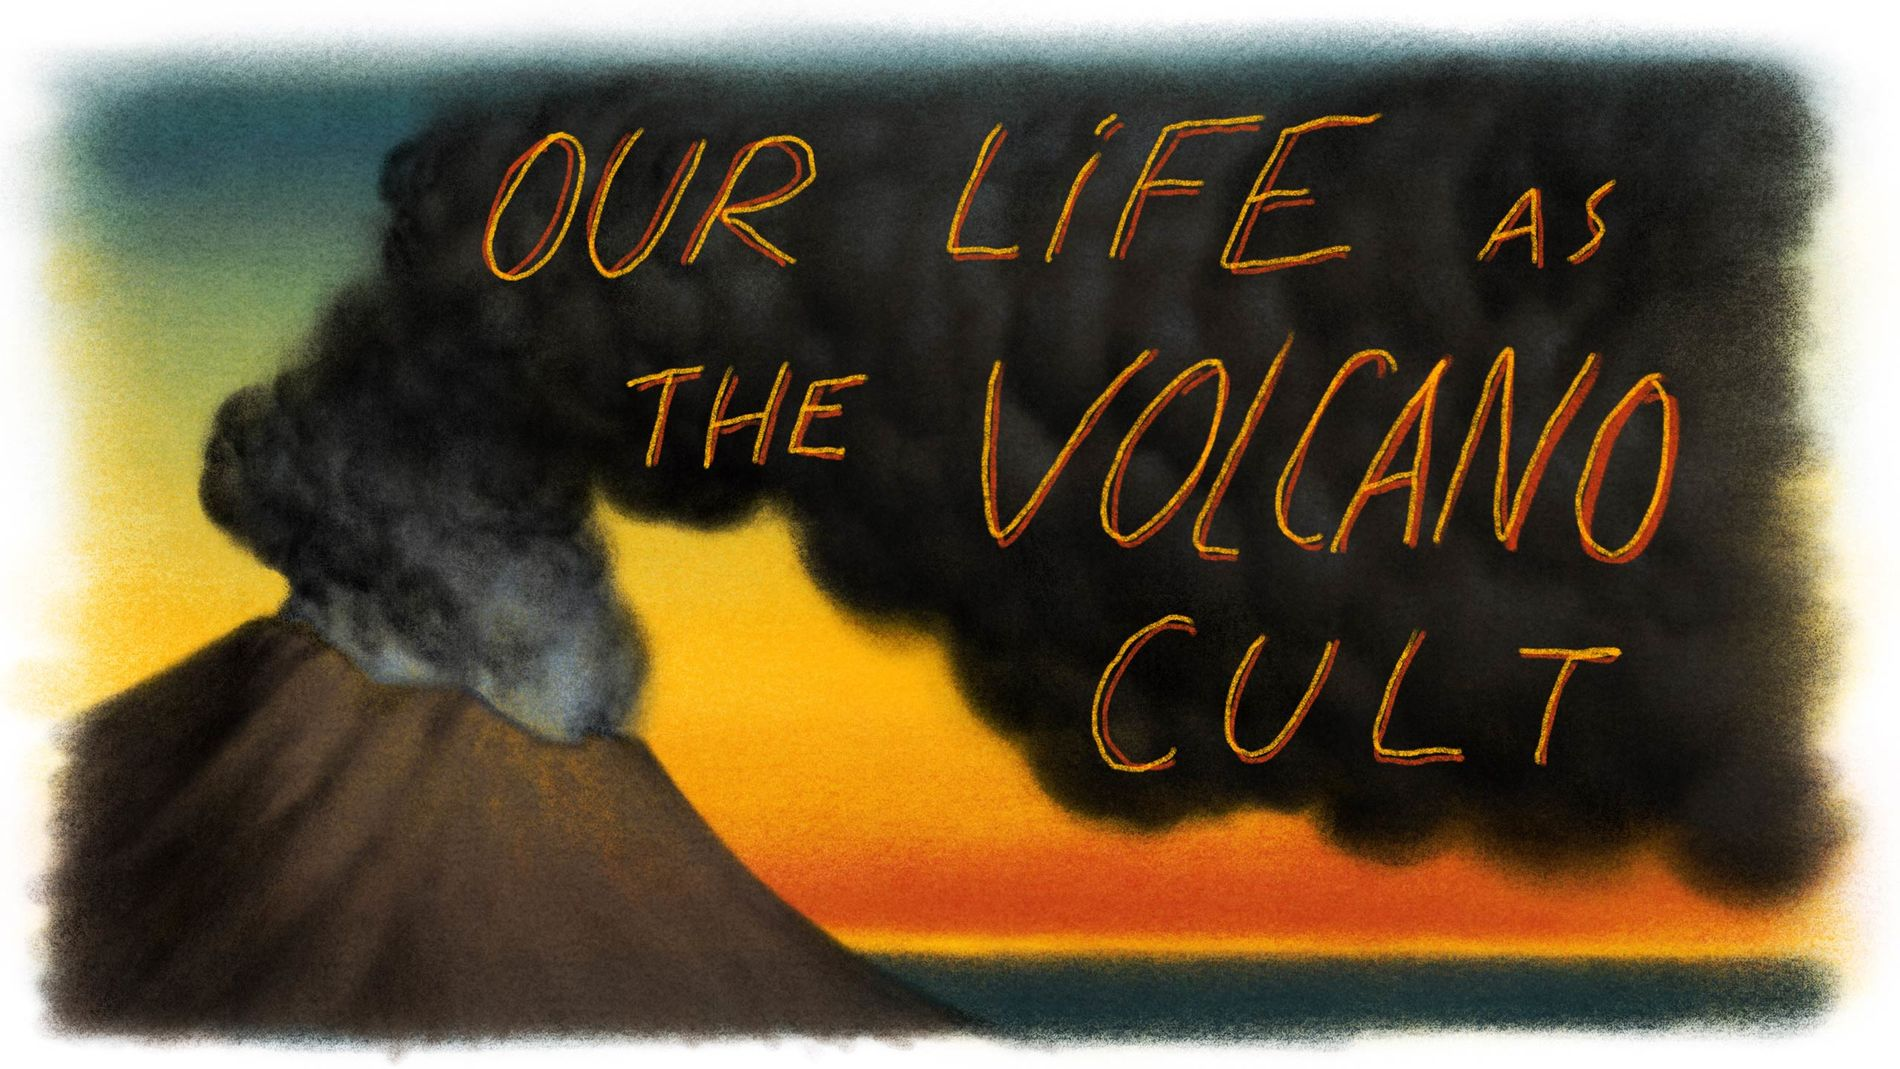 Our Life as the Volcano Cult